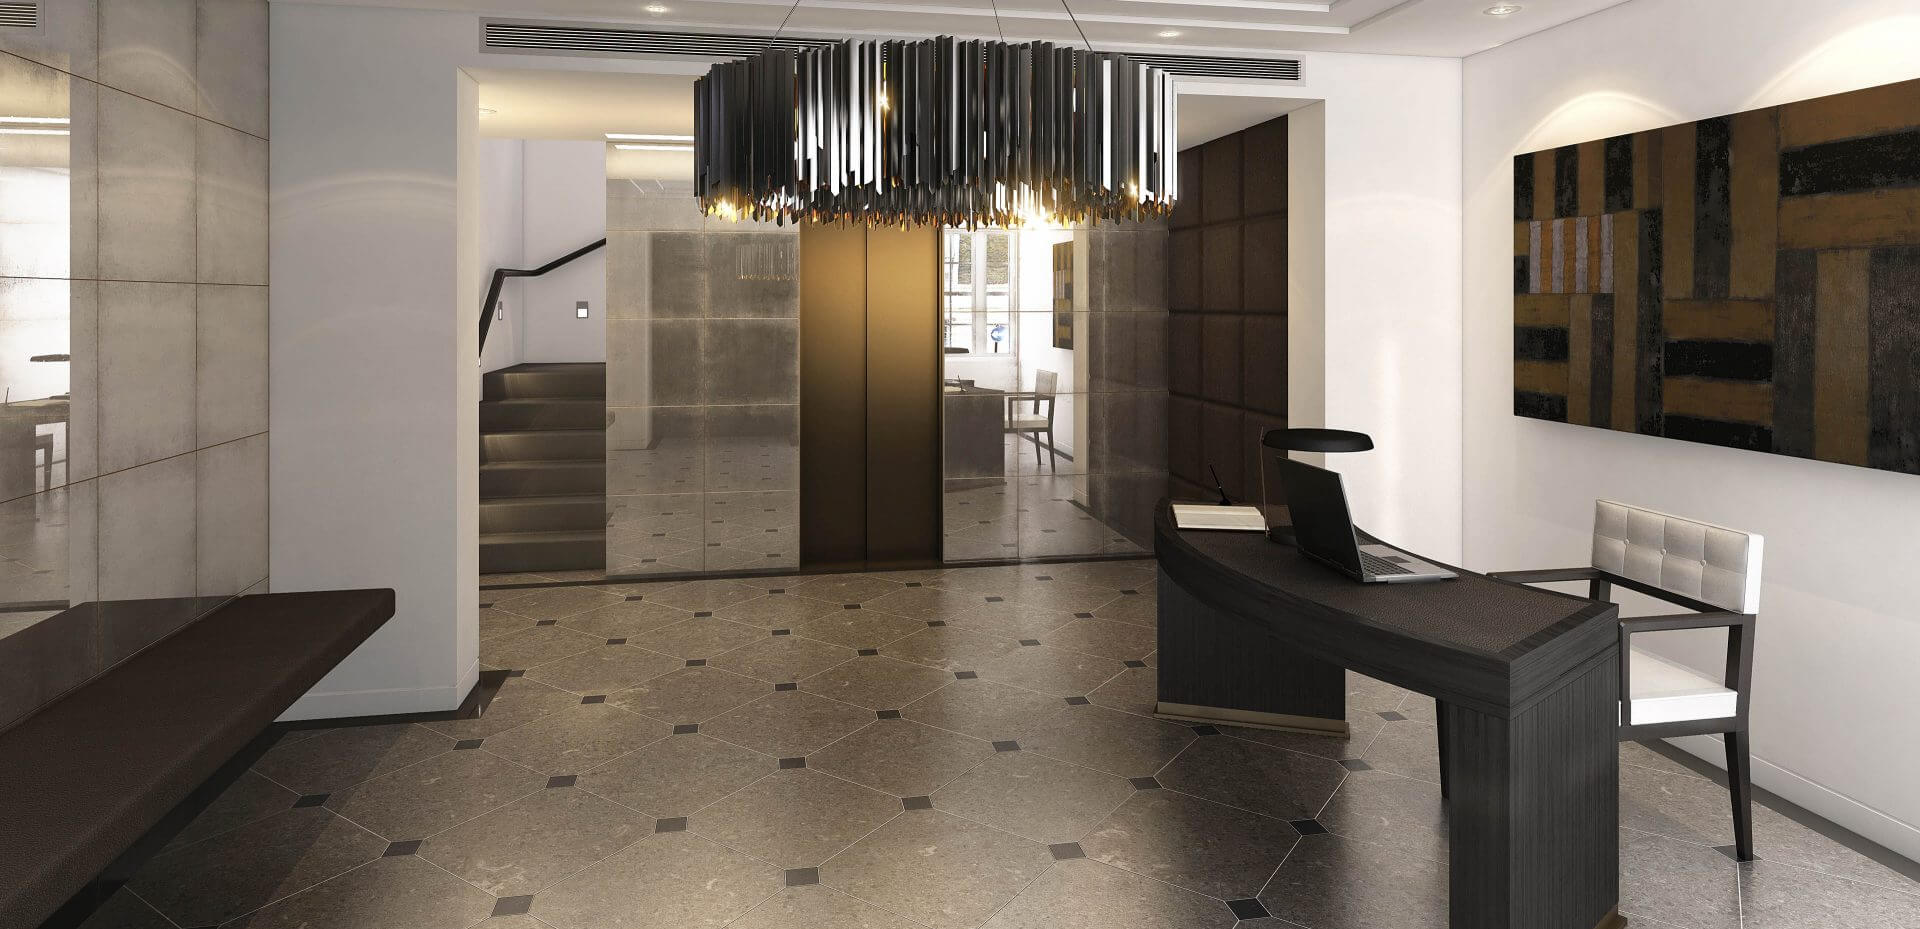 London residential reception visualisation for Devonshire Properties